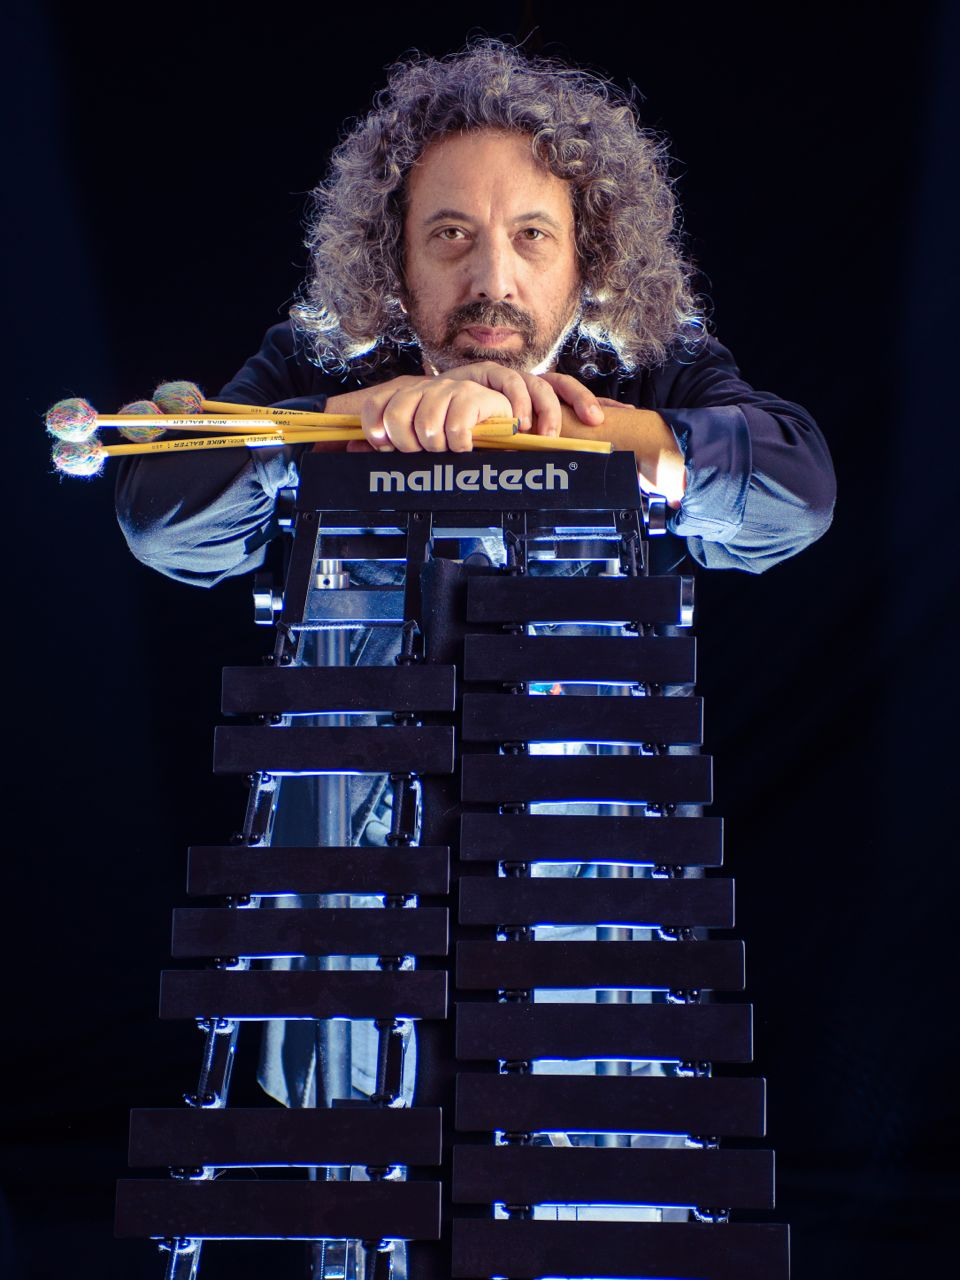 """Tony Miceli - Internationally renowned vibraphonist Tony Miceli has been performing steadily on the jazz scene since 1980. In All About Jazz, Vic Schermer describes him as ... """"a vibraphonist of astonishing virtuosity, musical resilience, and inventiveness. His vibes playing is nothing short of phenomenal.""""Tony is also the founder of www.vibesworkshop.com.Tony endorses: Malletech, Mike Balter, Alternate Mode, Beiner Bags"""